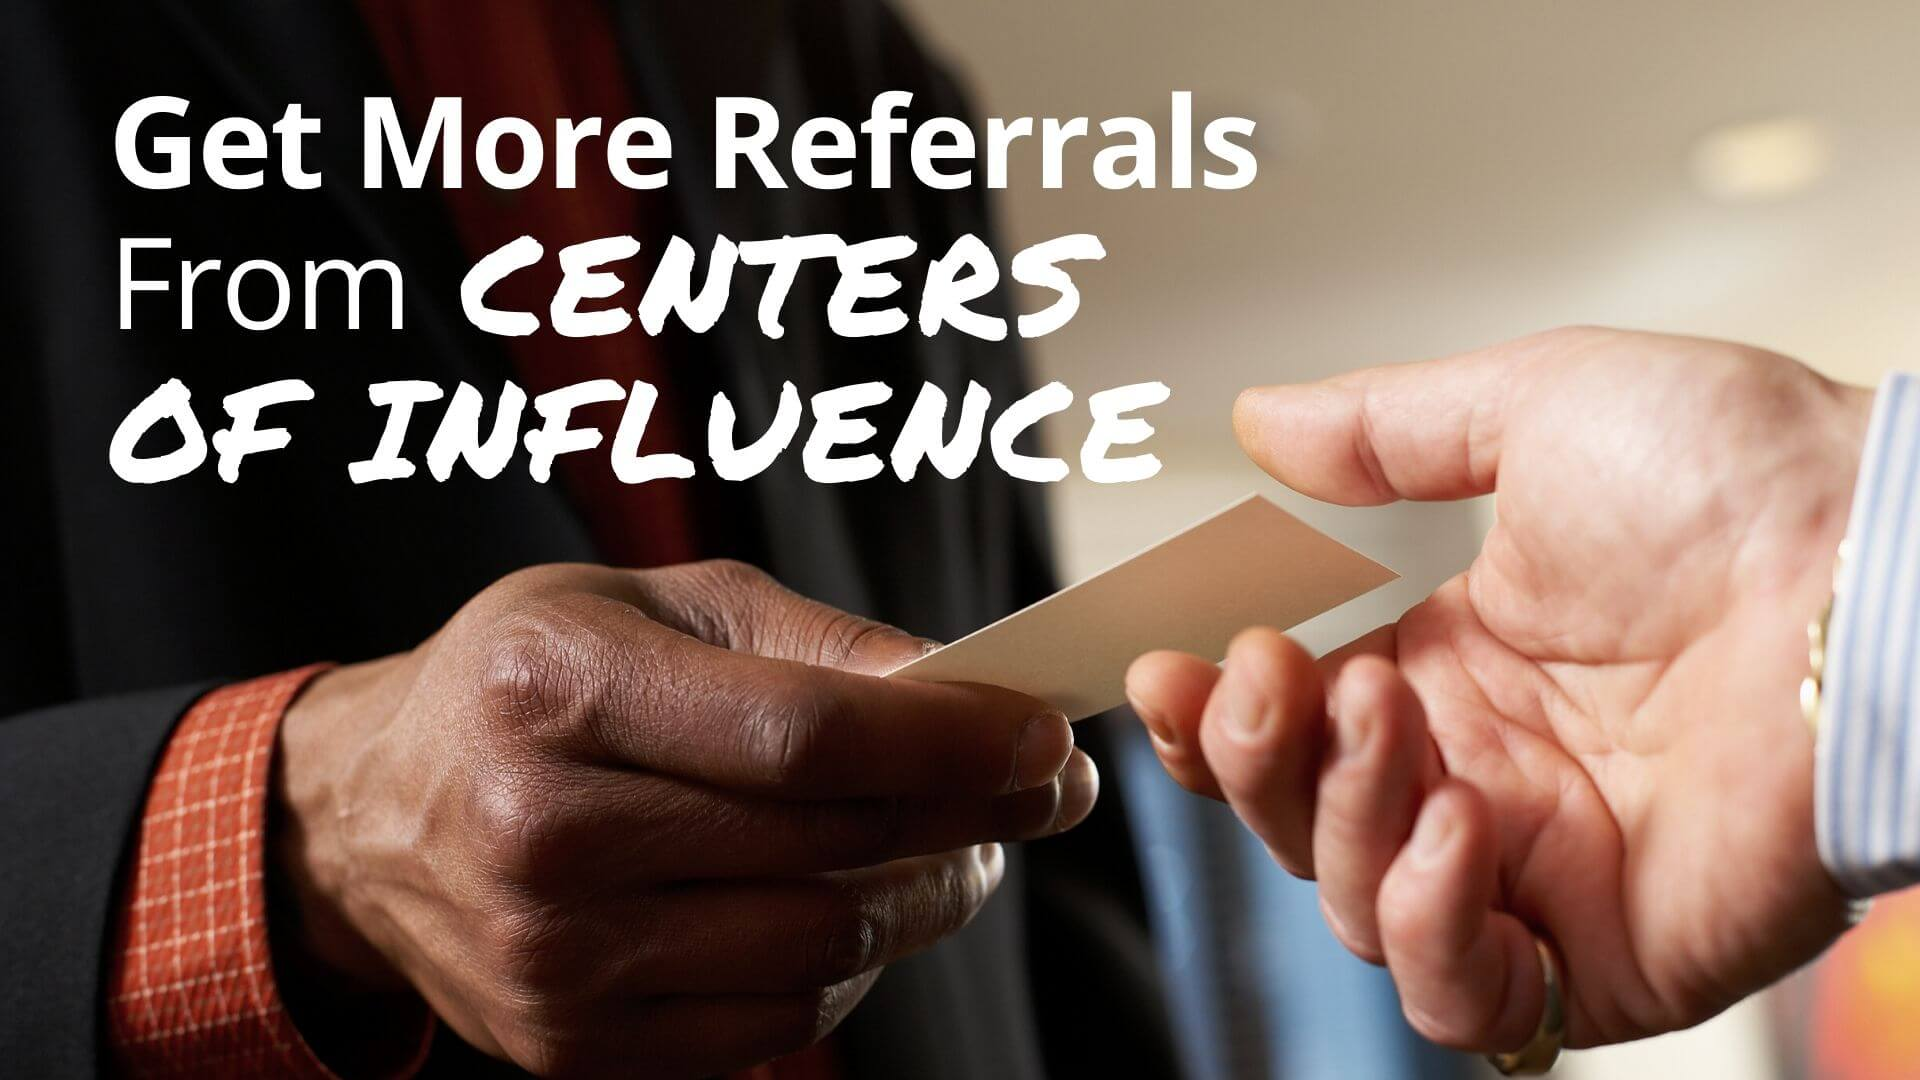 How to get more referrals from centers of influence (COI's)